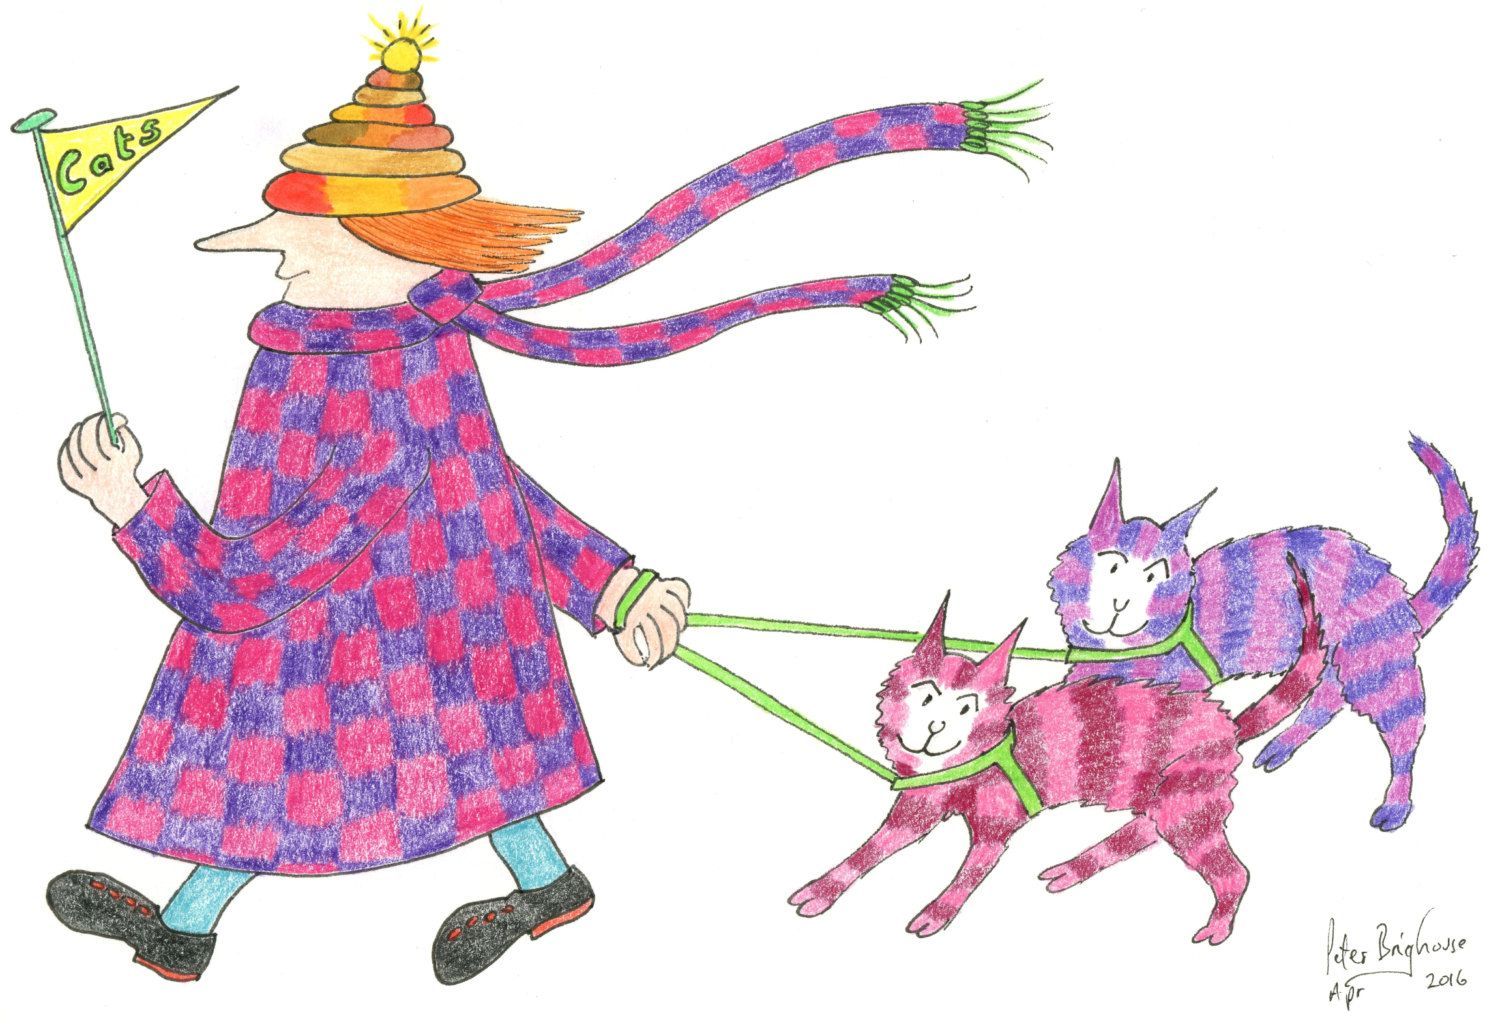 C6 card madpiedcatwoman red purple chequered coat 2 matching cats card red purple chequered coat 2 matching cats on leads small blank greetings card matt finish by mrsquimpscatshop on etsy kristyandbryce Image collections